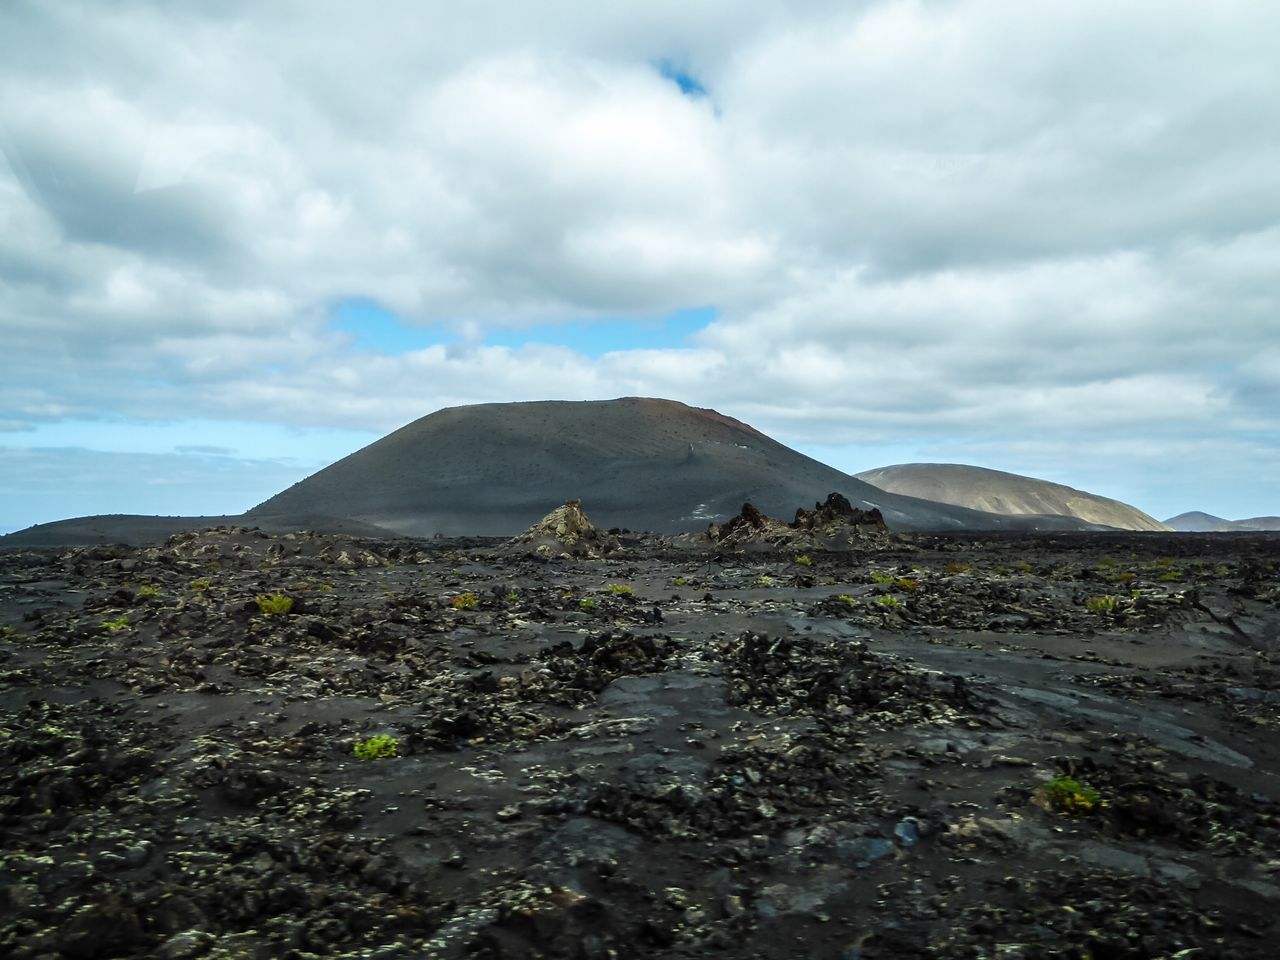 sky, cloud - sky, nature, geology, landscape, tranquil scene, beauty in nature, tranquility, scenics, outdoors, day, volcanic landscape, no people, physical geography, mountain